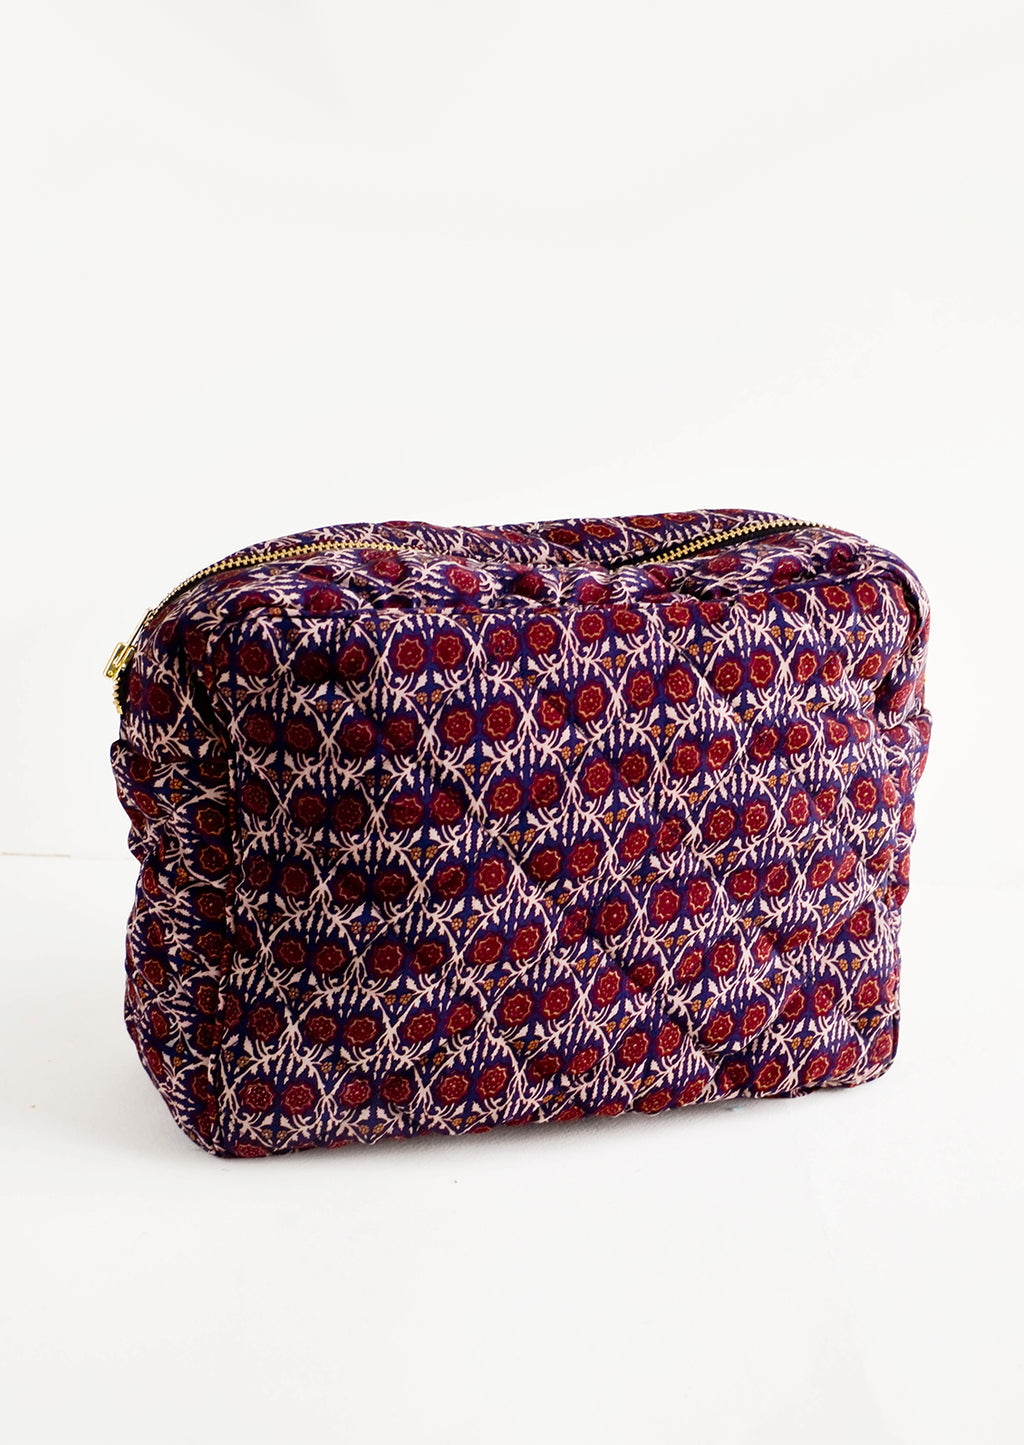 Large / Navy / Wine: Flat and rectangular makeup travel bag with zip closure in wine & navy floral